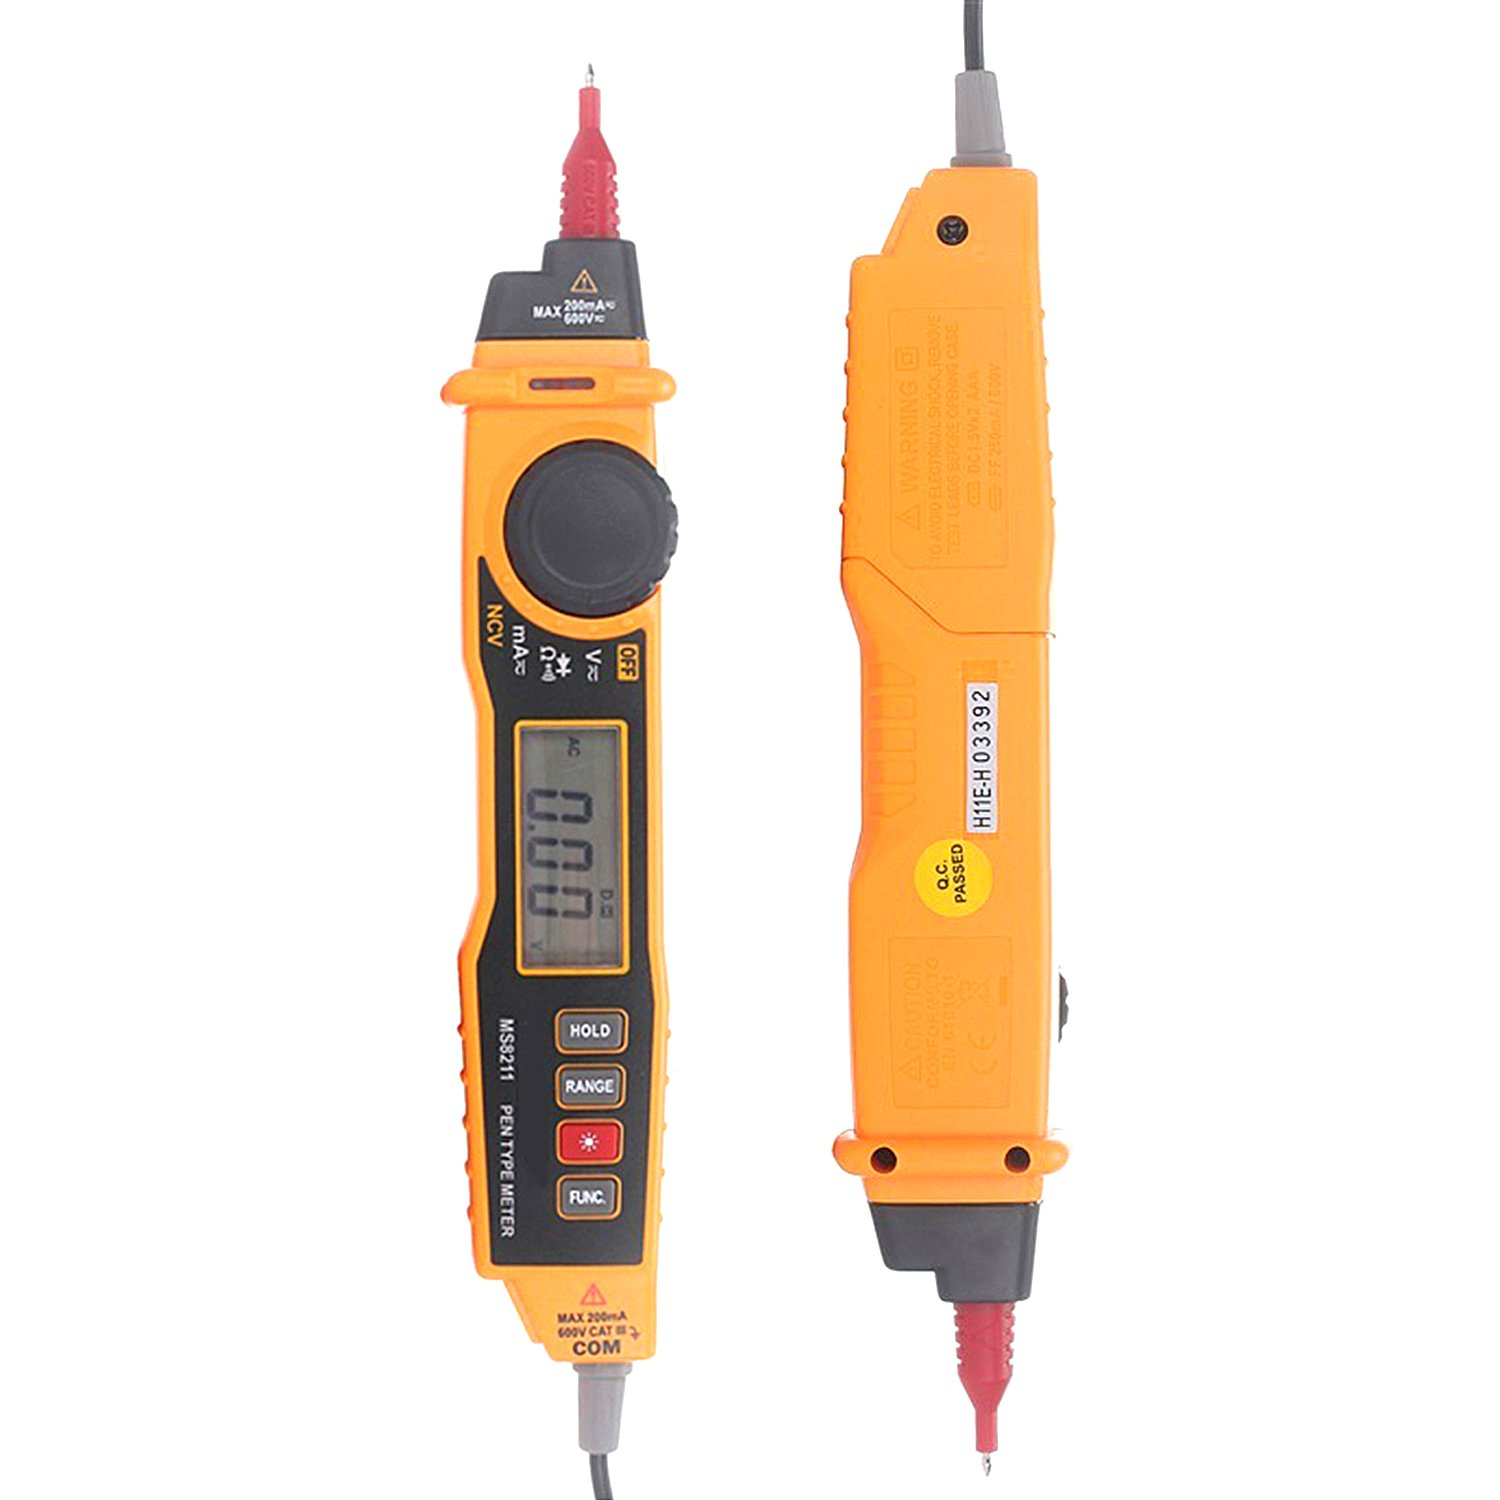 CarBoss MS8211 2000 Counts Pen Type Digital Probe Multimeter with NCV Detector Non-contact AC DC Voltage Current Auto and Manual Ranging Data Hold Electric Ammeter Voltage Tester Multitester